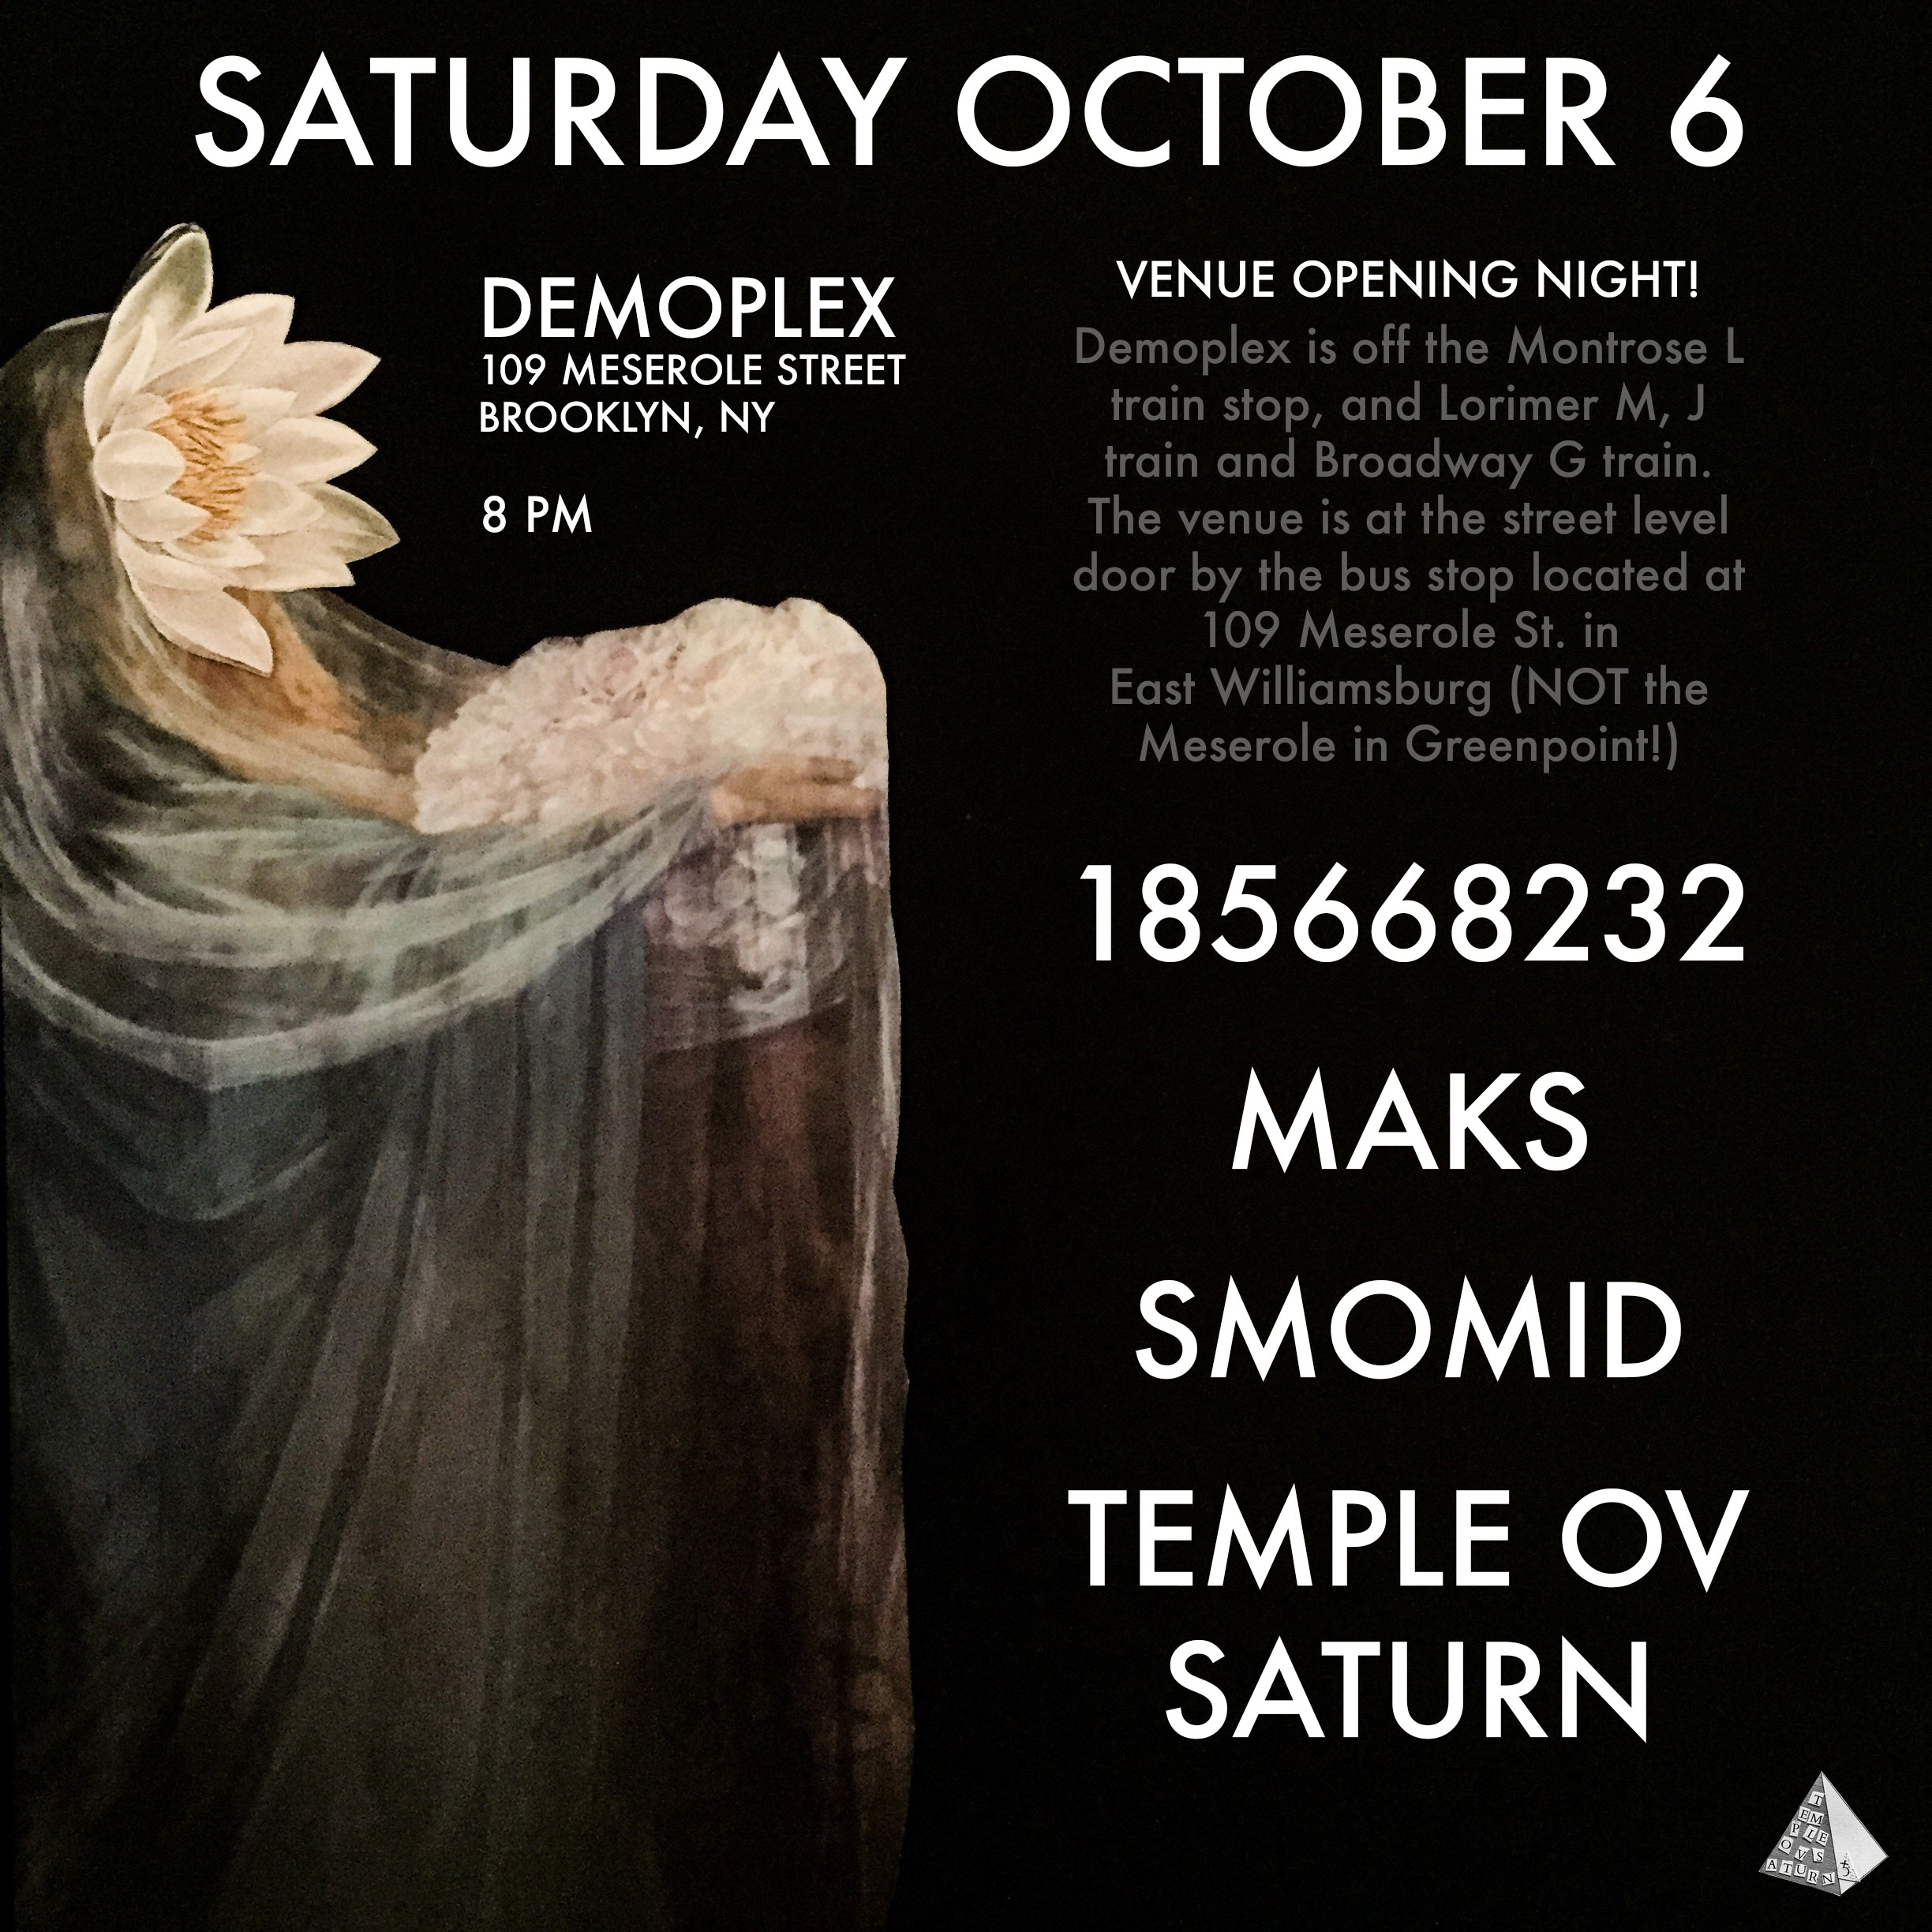 demoplex flyer temple ov saturn.jpg